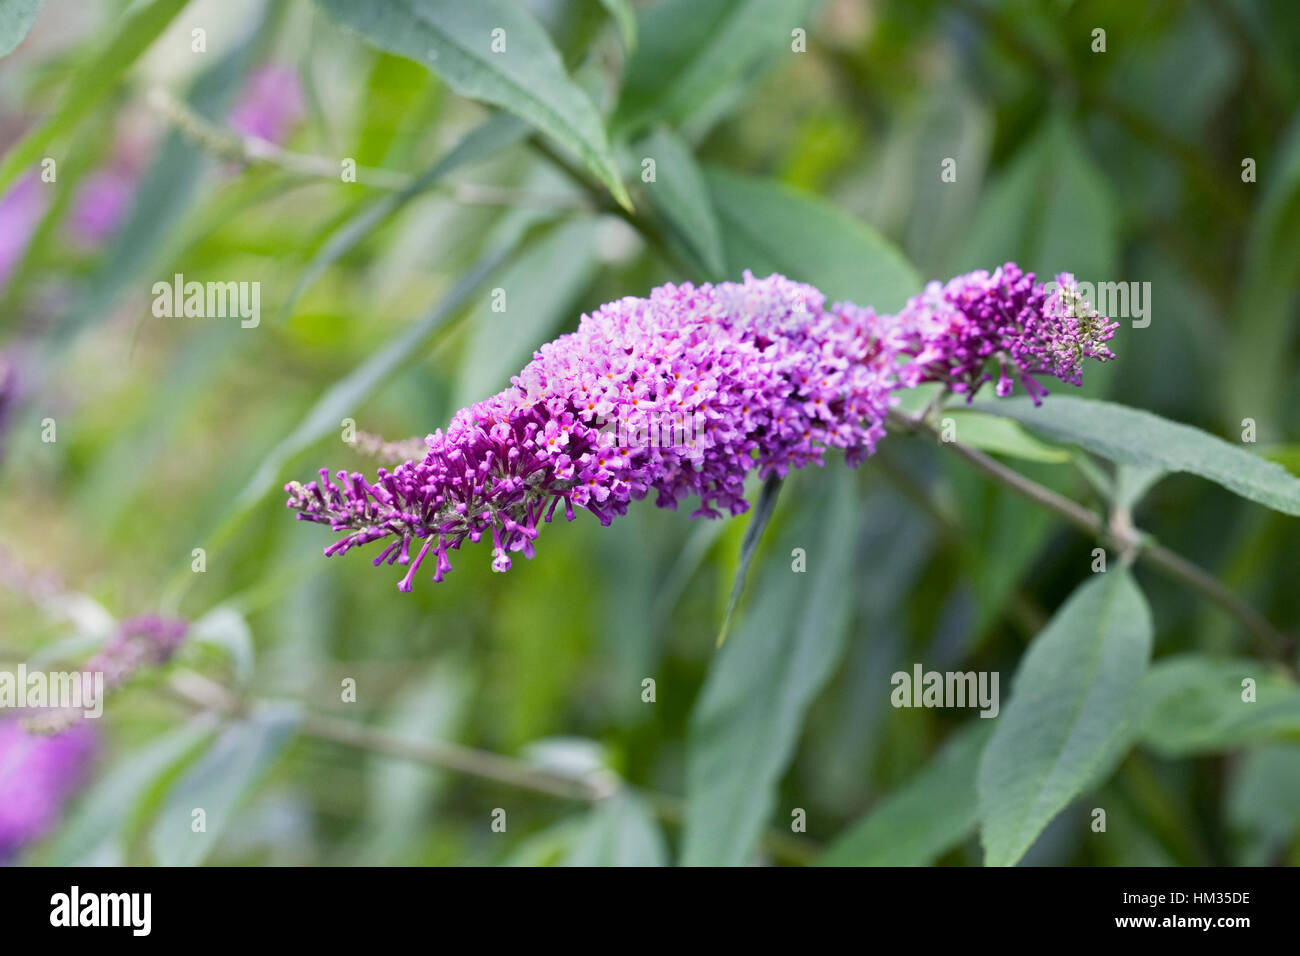 buddleja garden stockfotos buddleja garden bilder alamy. Black Bedroom Furniture Sets. Home Design Ideas